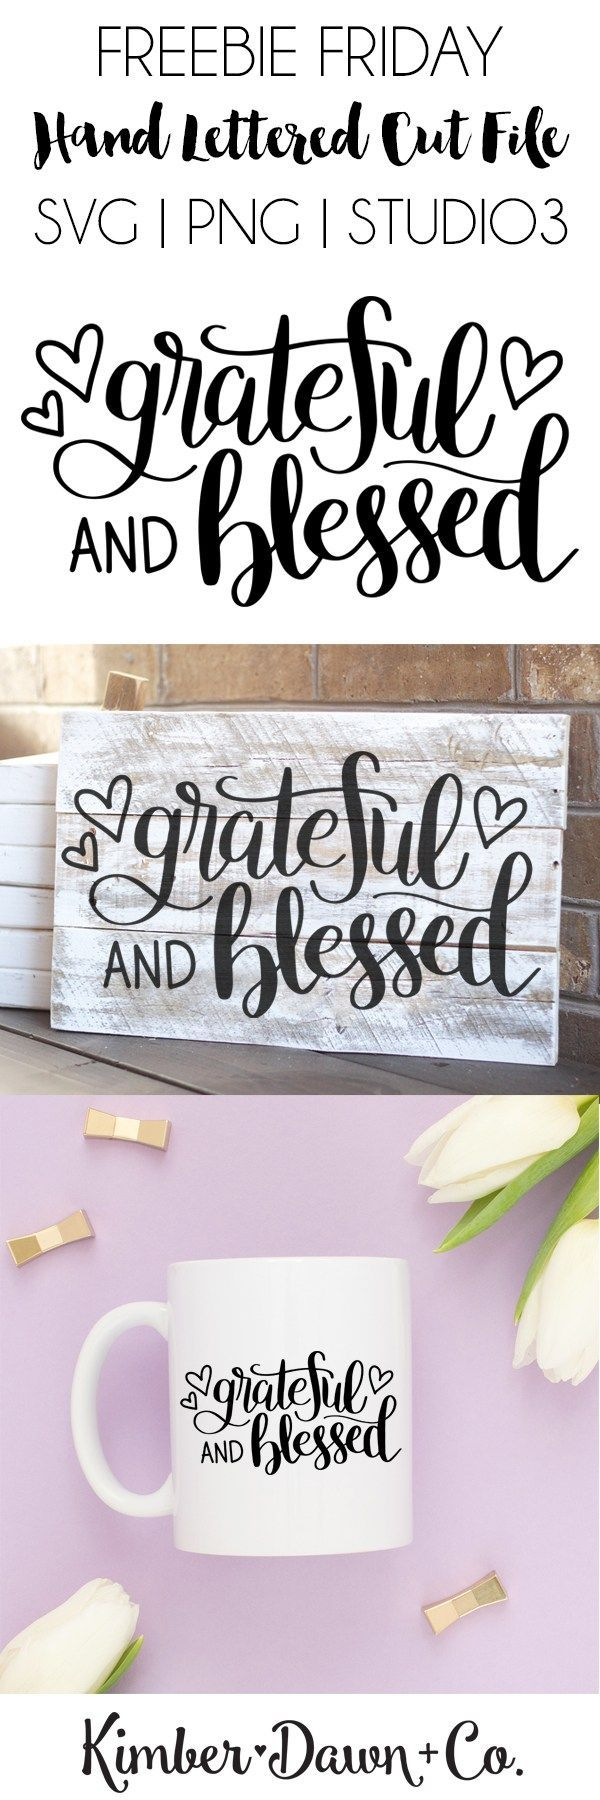 "Hand Lettered Grateful and Blessed Free SVG Cut File  Hand Lettered Grateful and Blessed Free SVG Cut File   Who's ready for some Thanksgiving crafting?! We sure are. Not to mention ""Grateful and Bles"